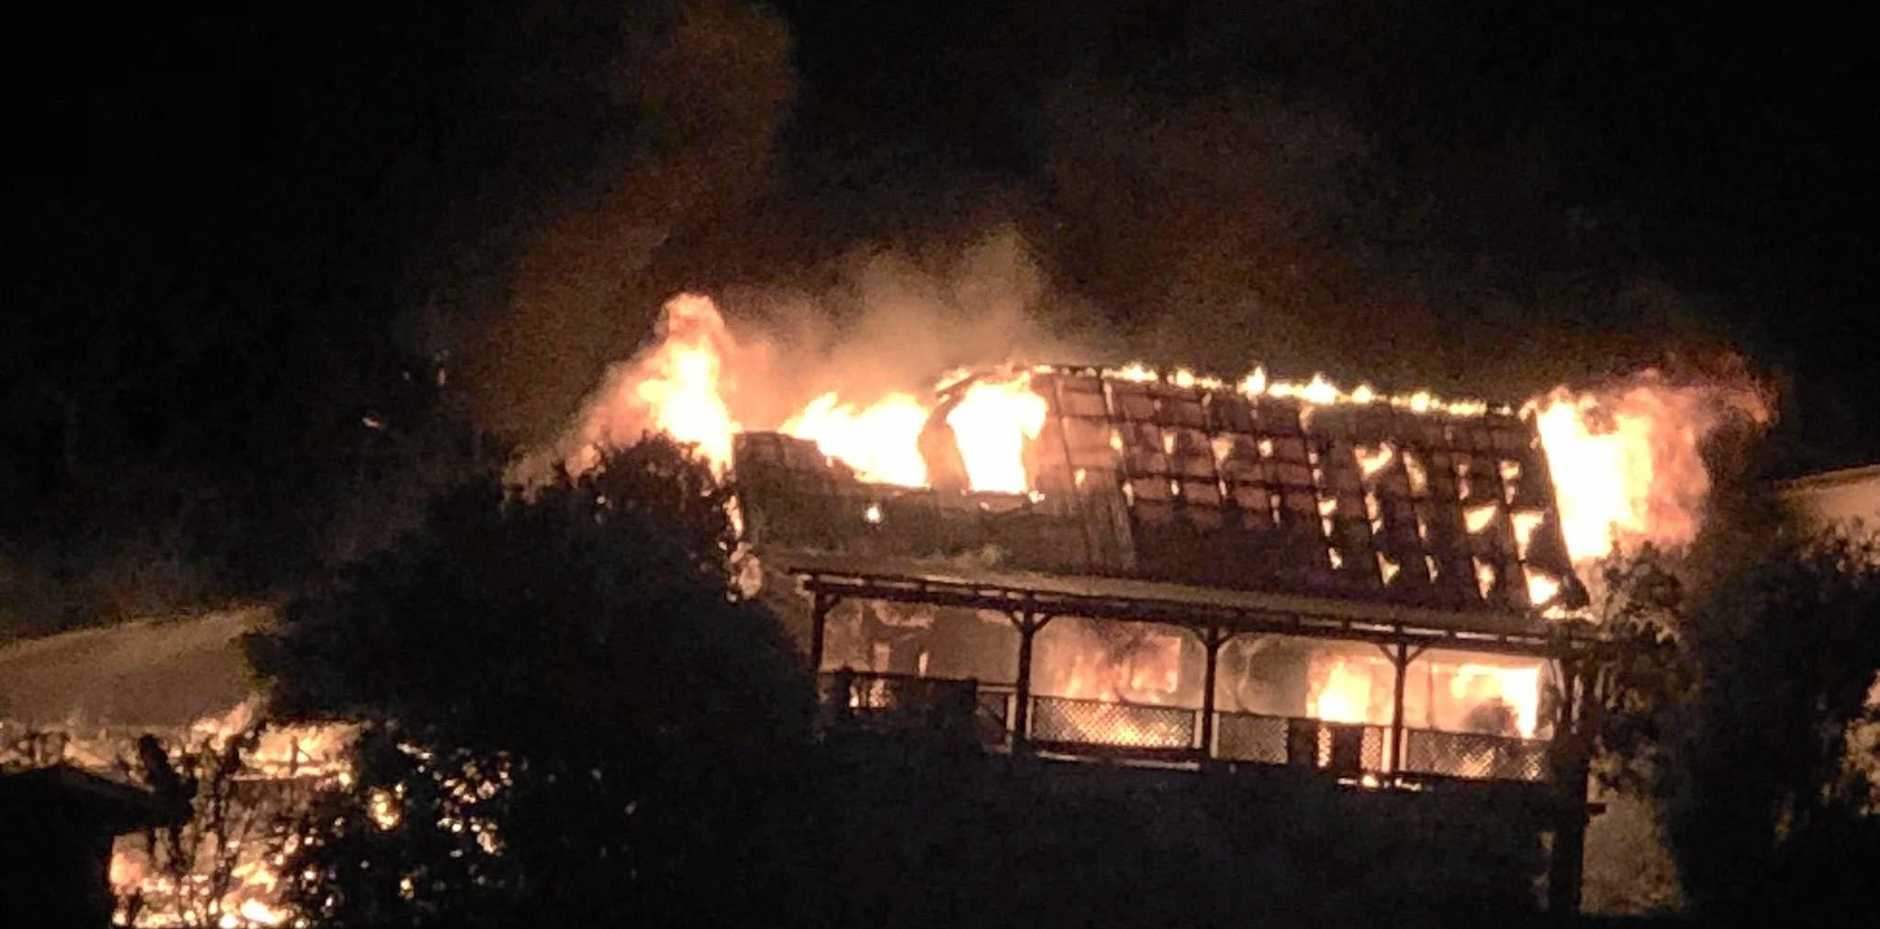 TWO homes in Lennox Head have been reduced to ashes overnight in a devastating house fire.